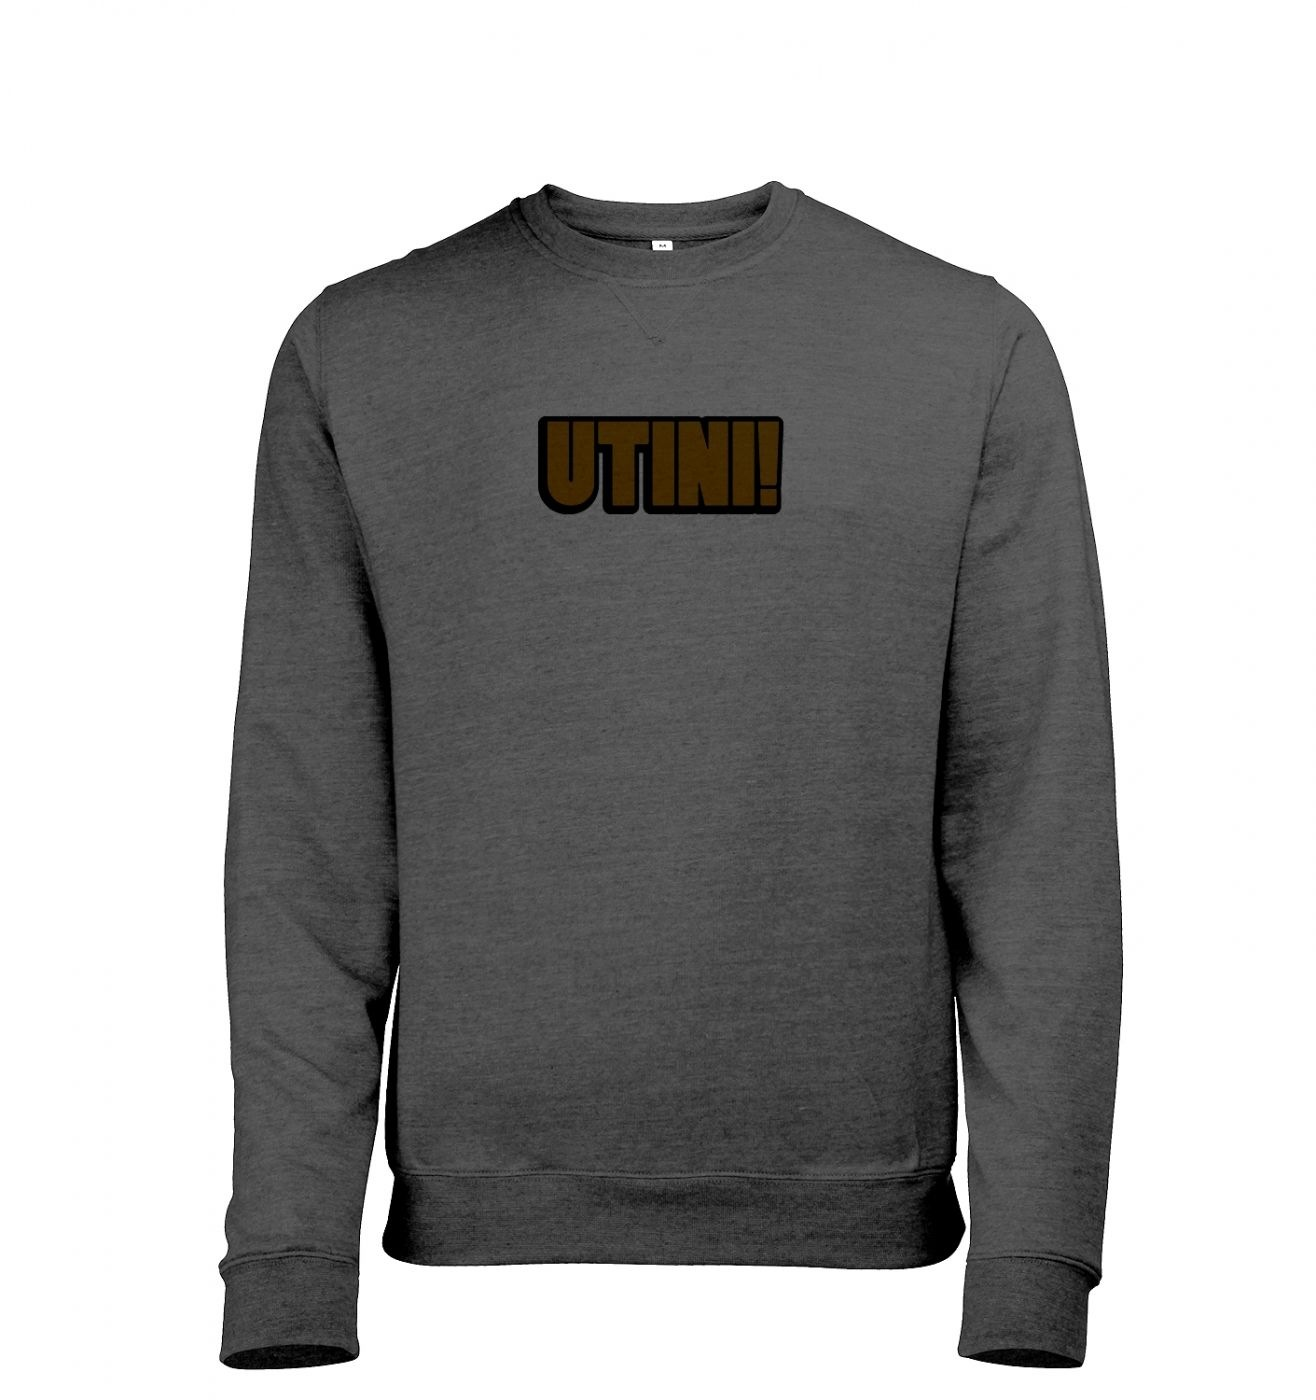 Utini Jawa Cry Mens Heather Sweatshirt   - Inspired by Star Wars